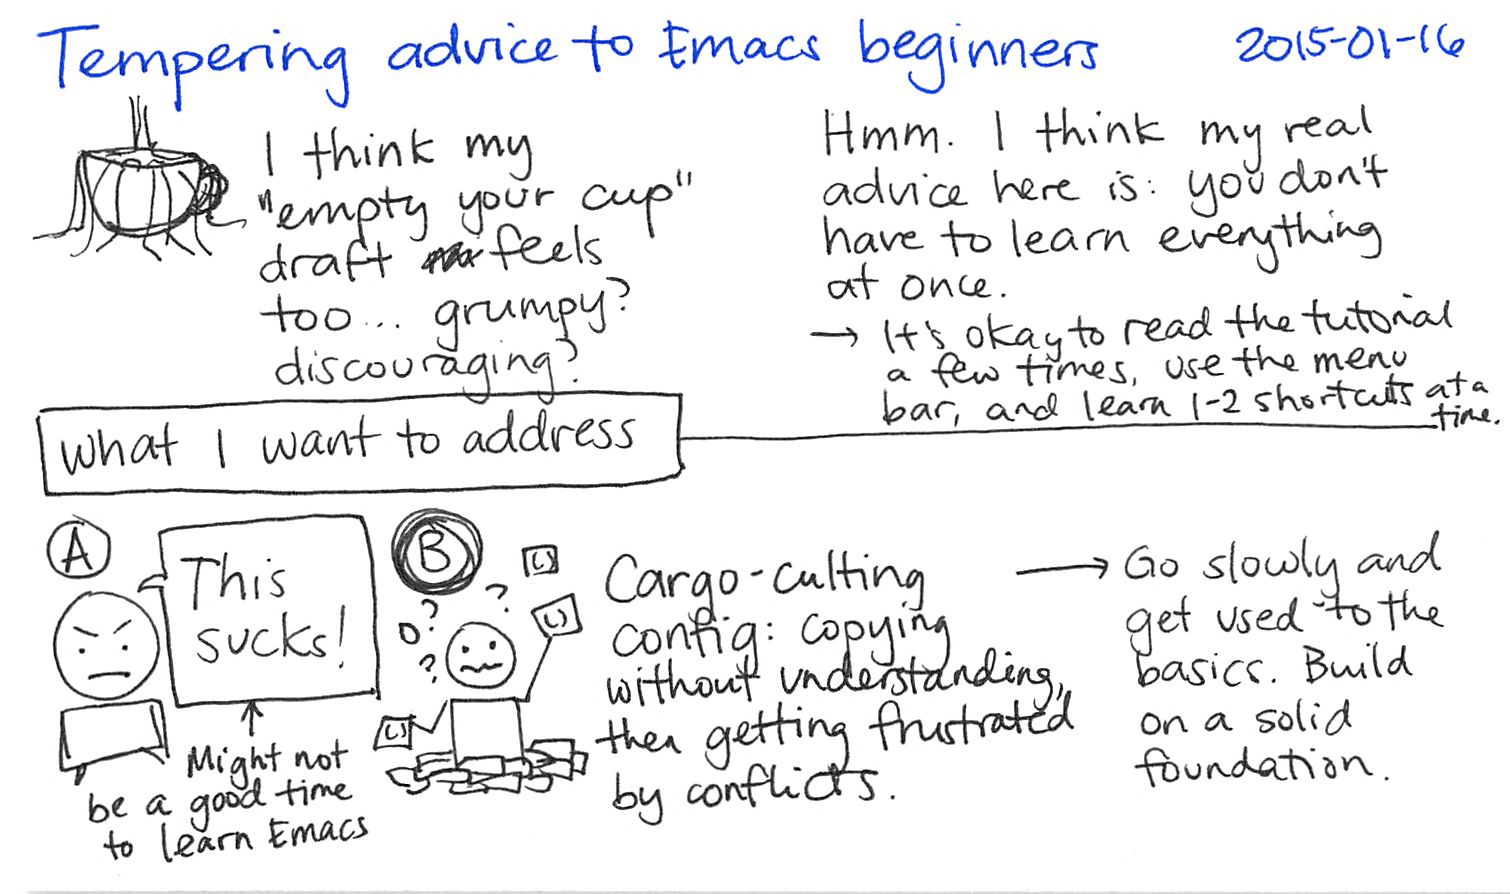 resume emacs session